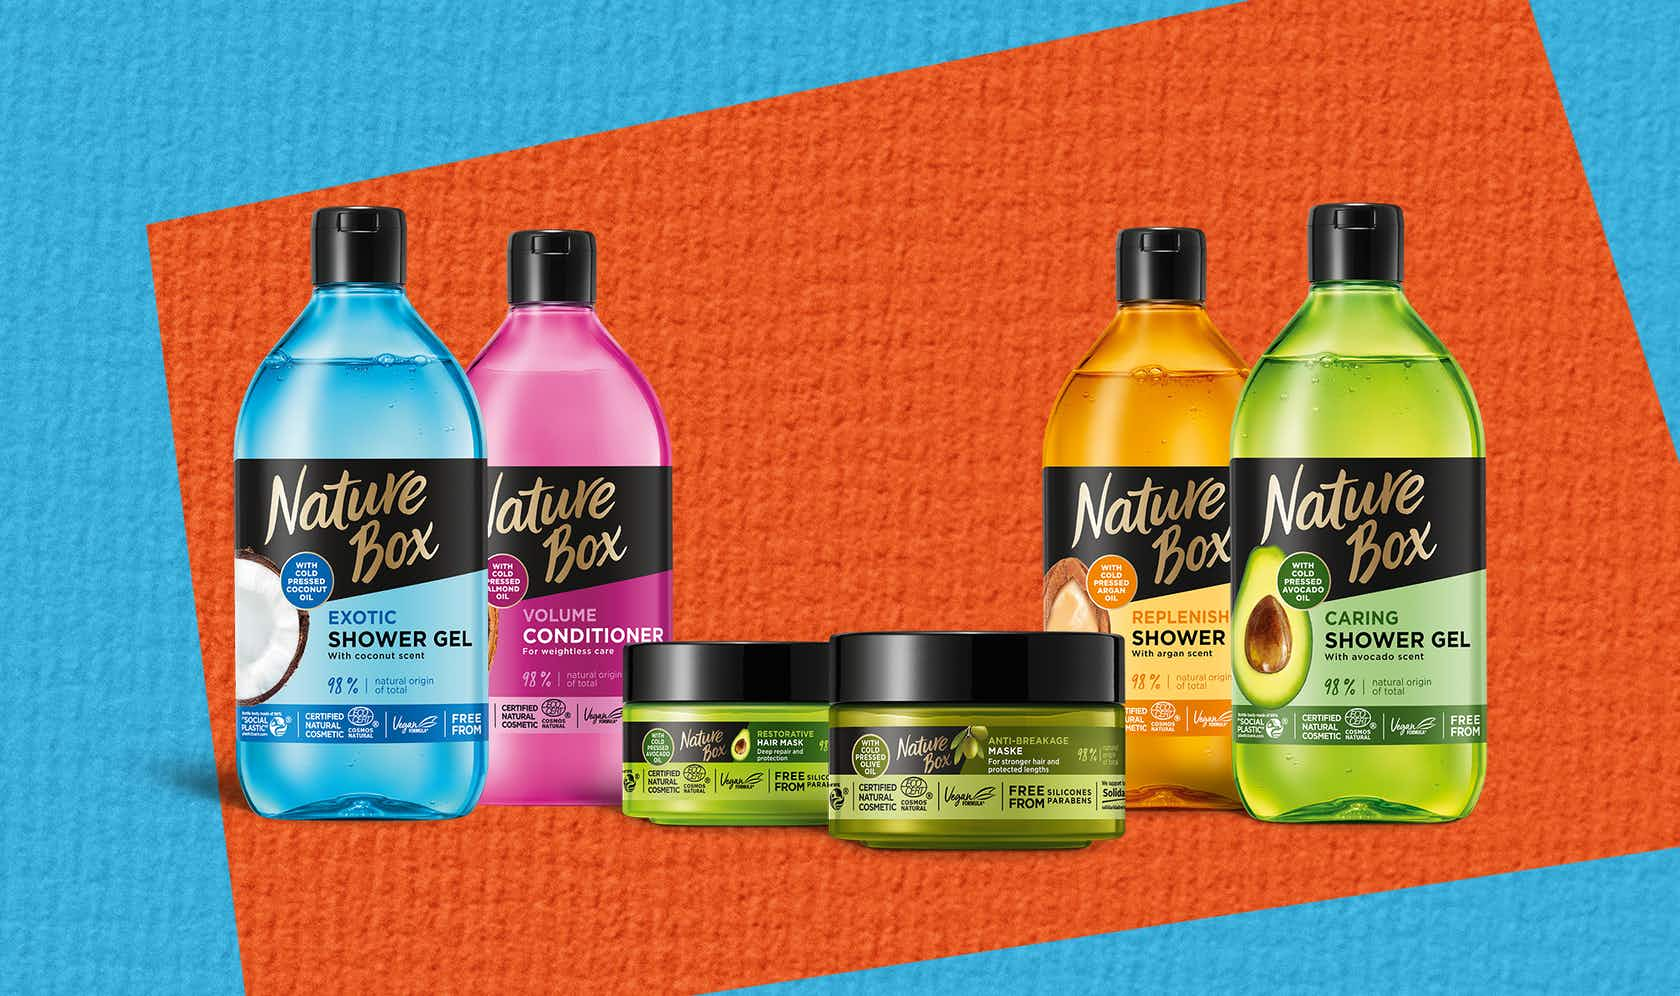 An image showing multiple NatureBox products